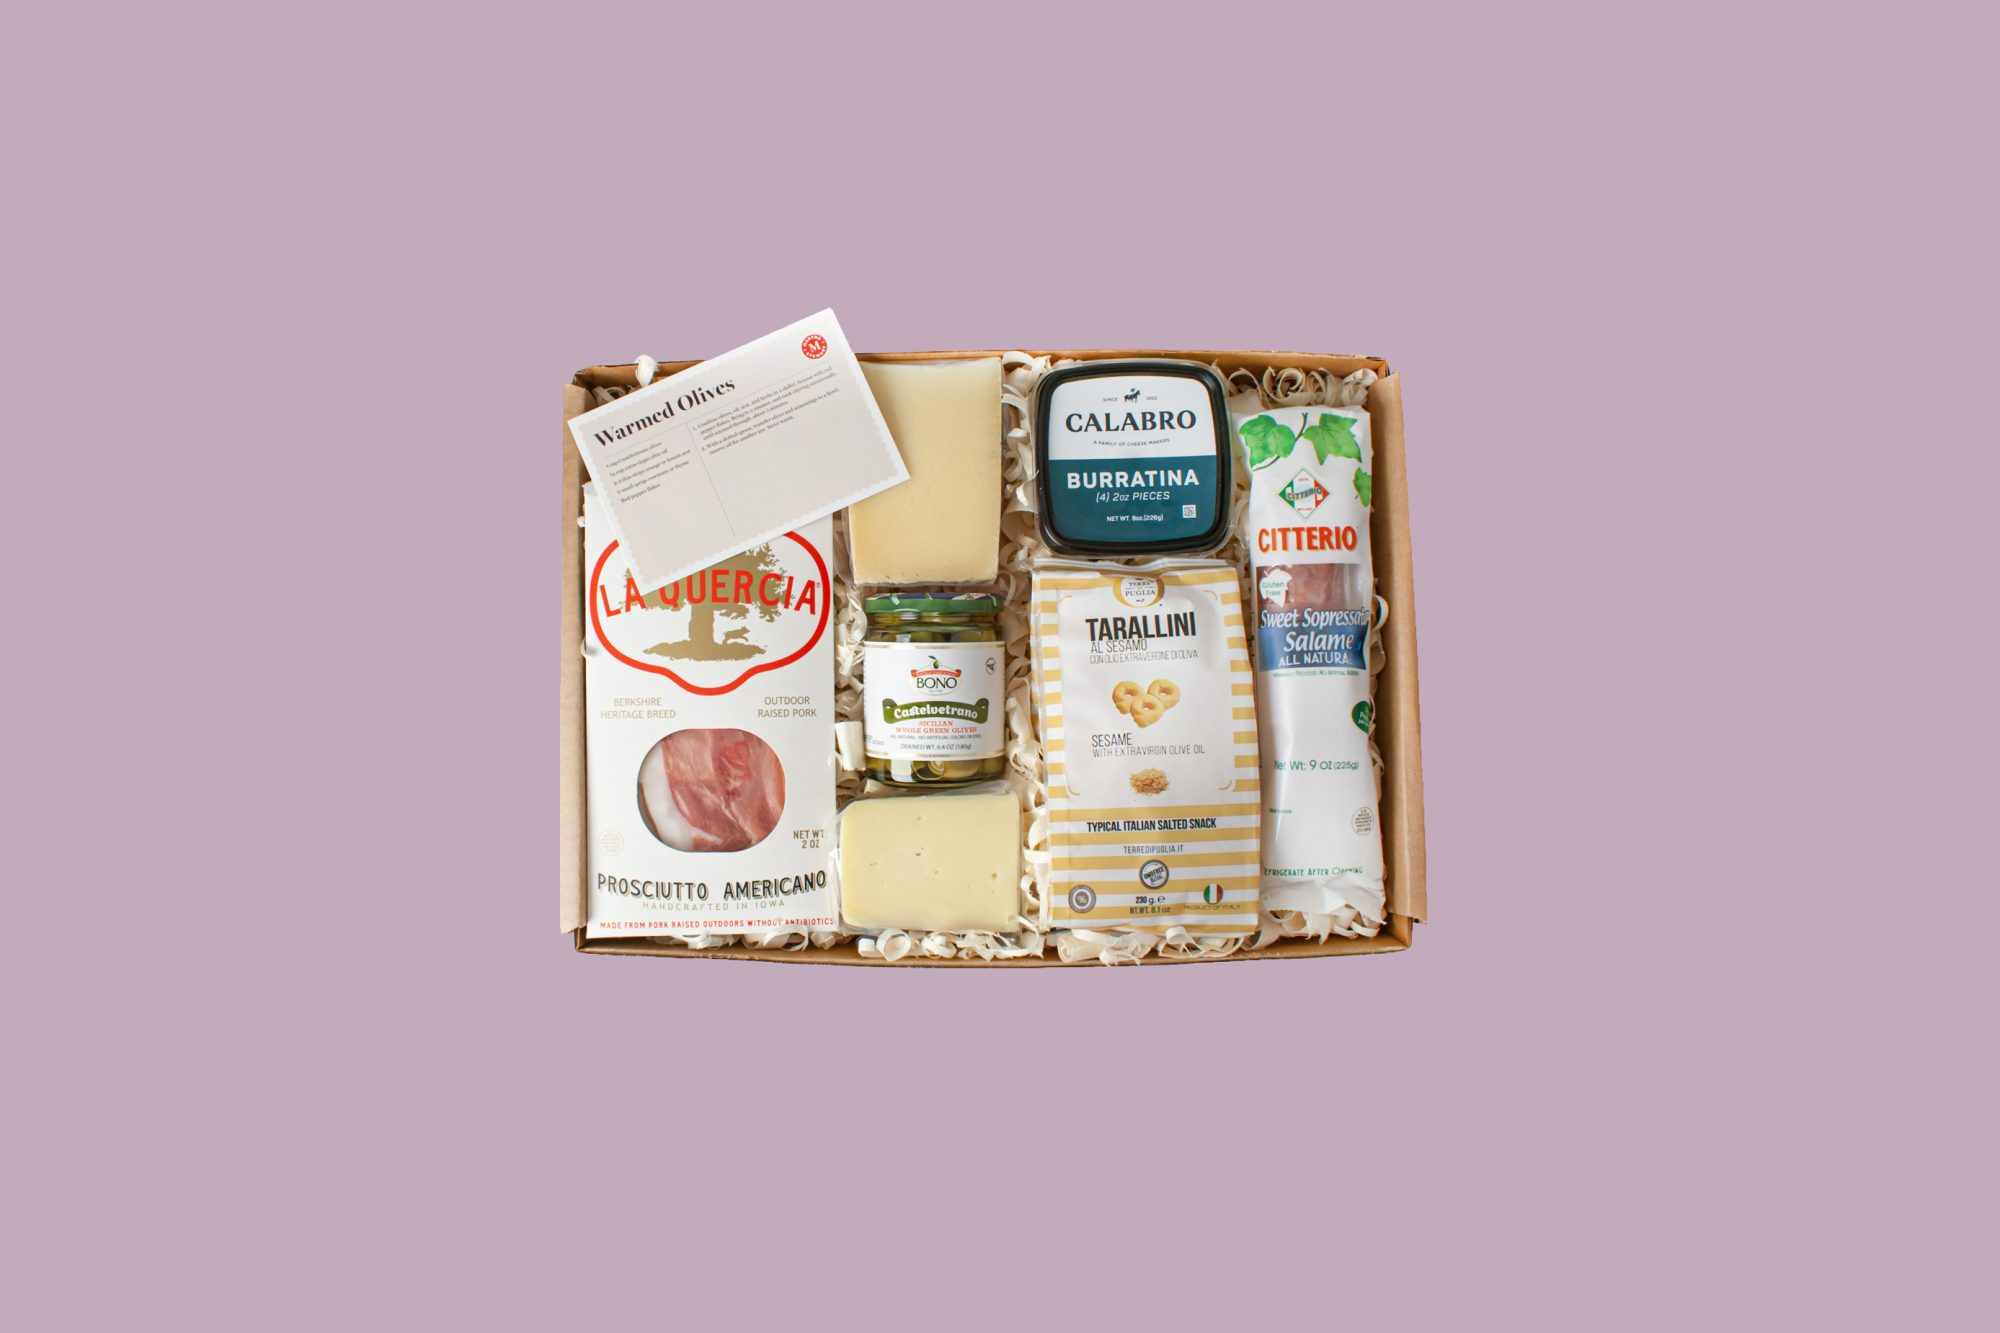 snack food gift kit